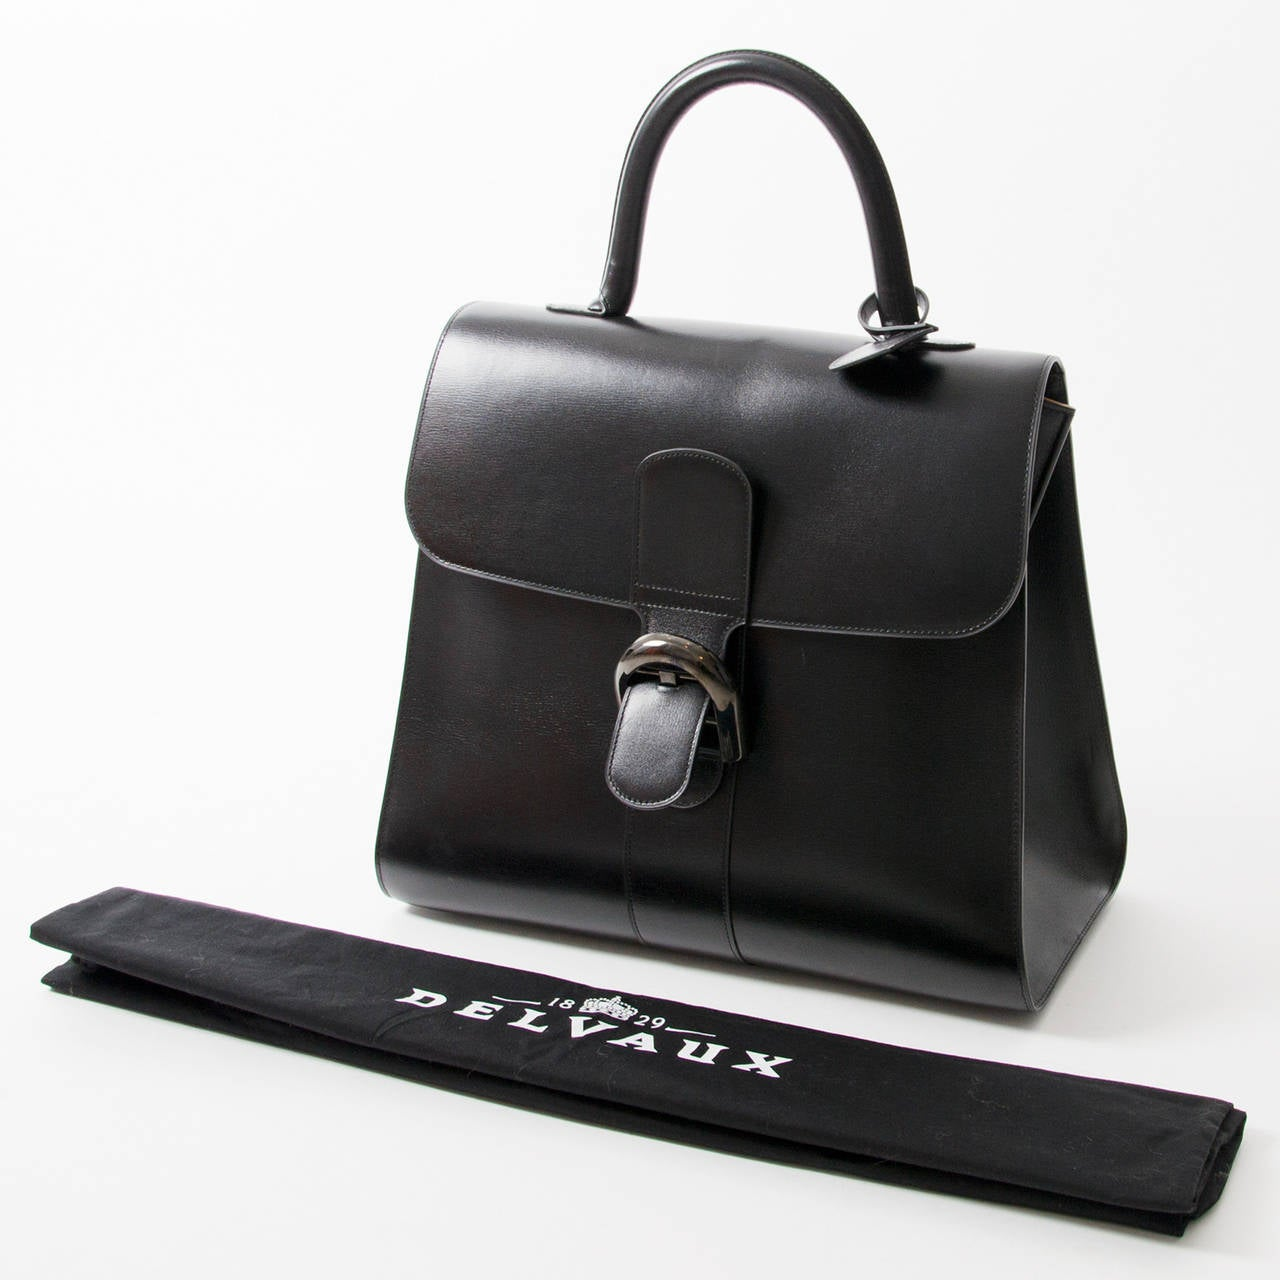 Delvaux Brillant Black Edition GM+B In Excellent Condition For Sale In Antwerp, BE